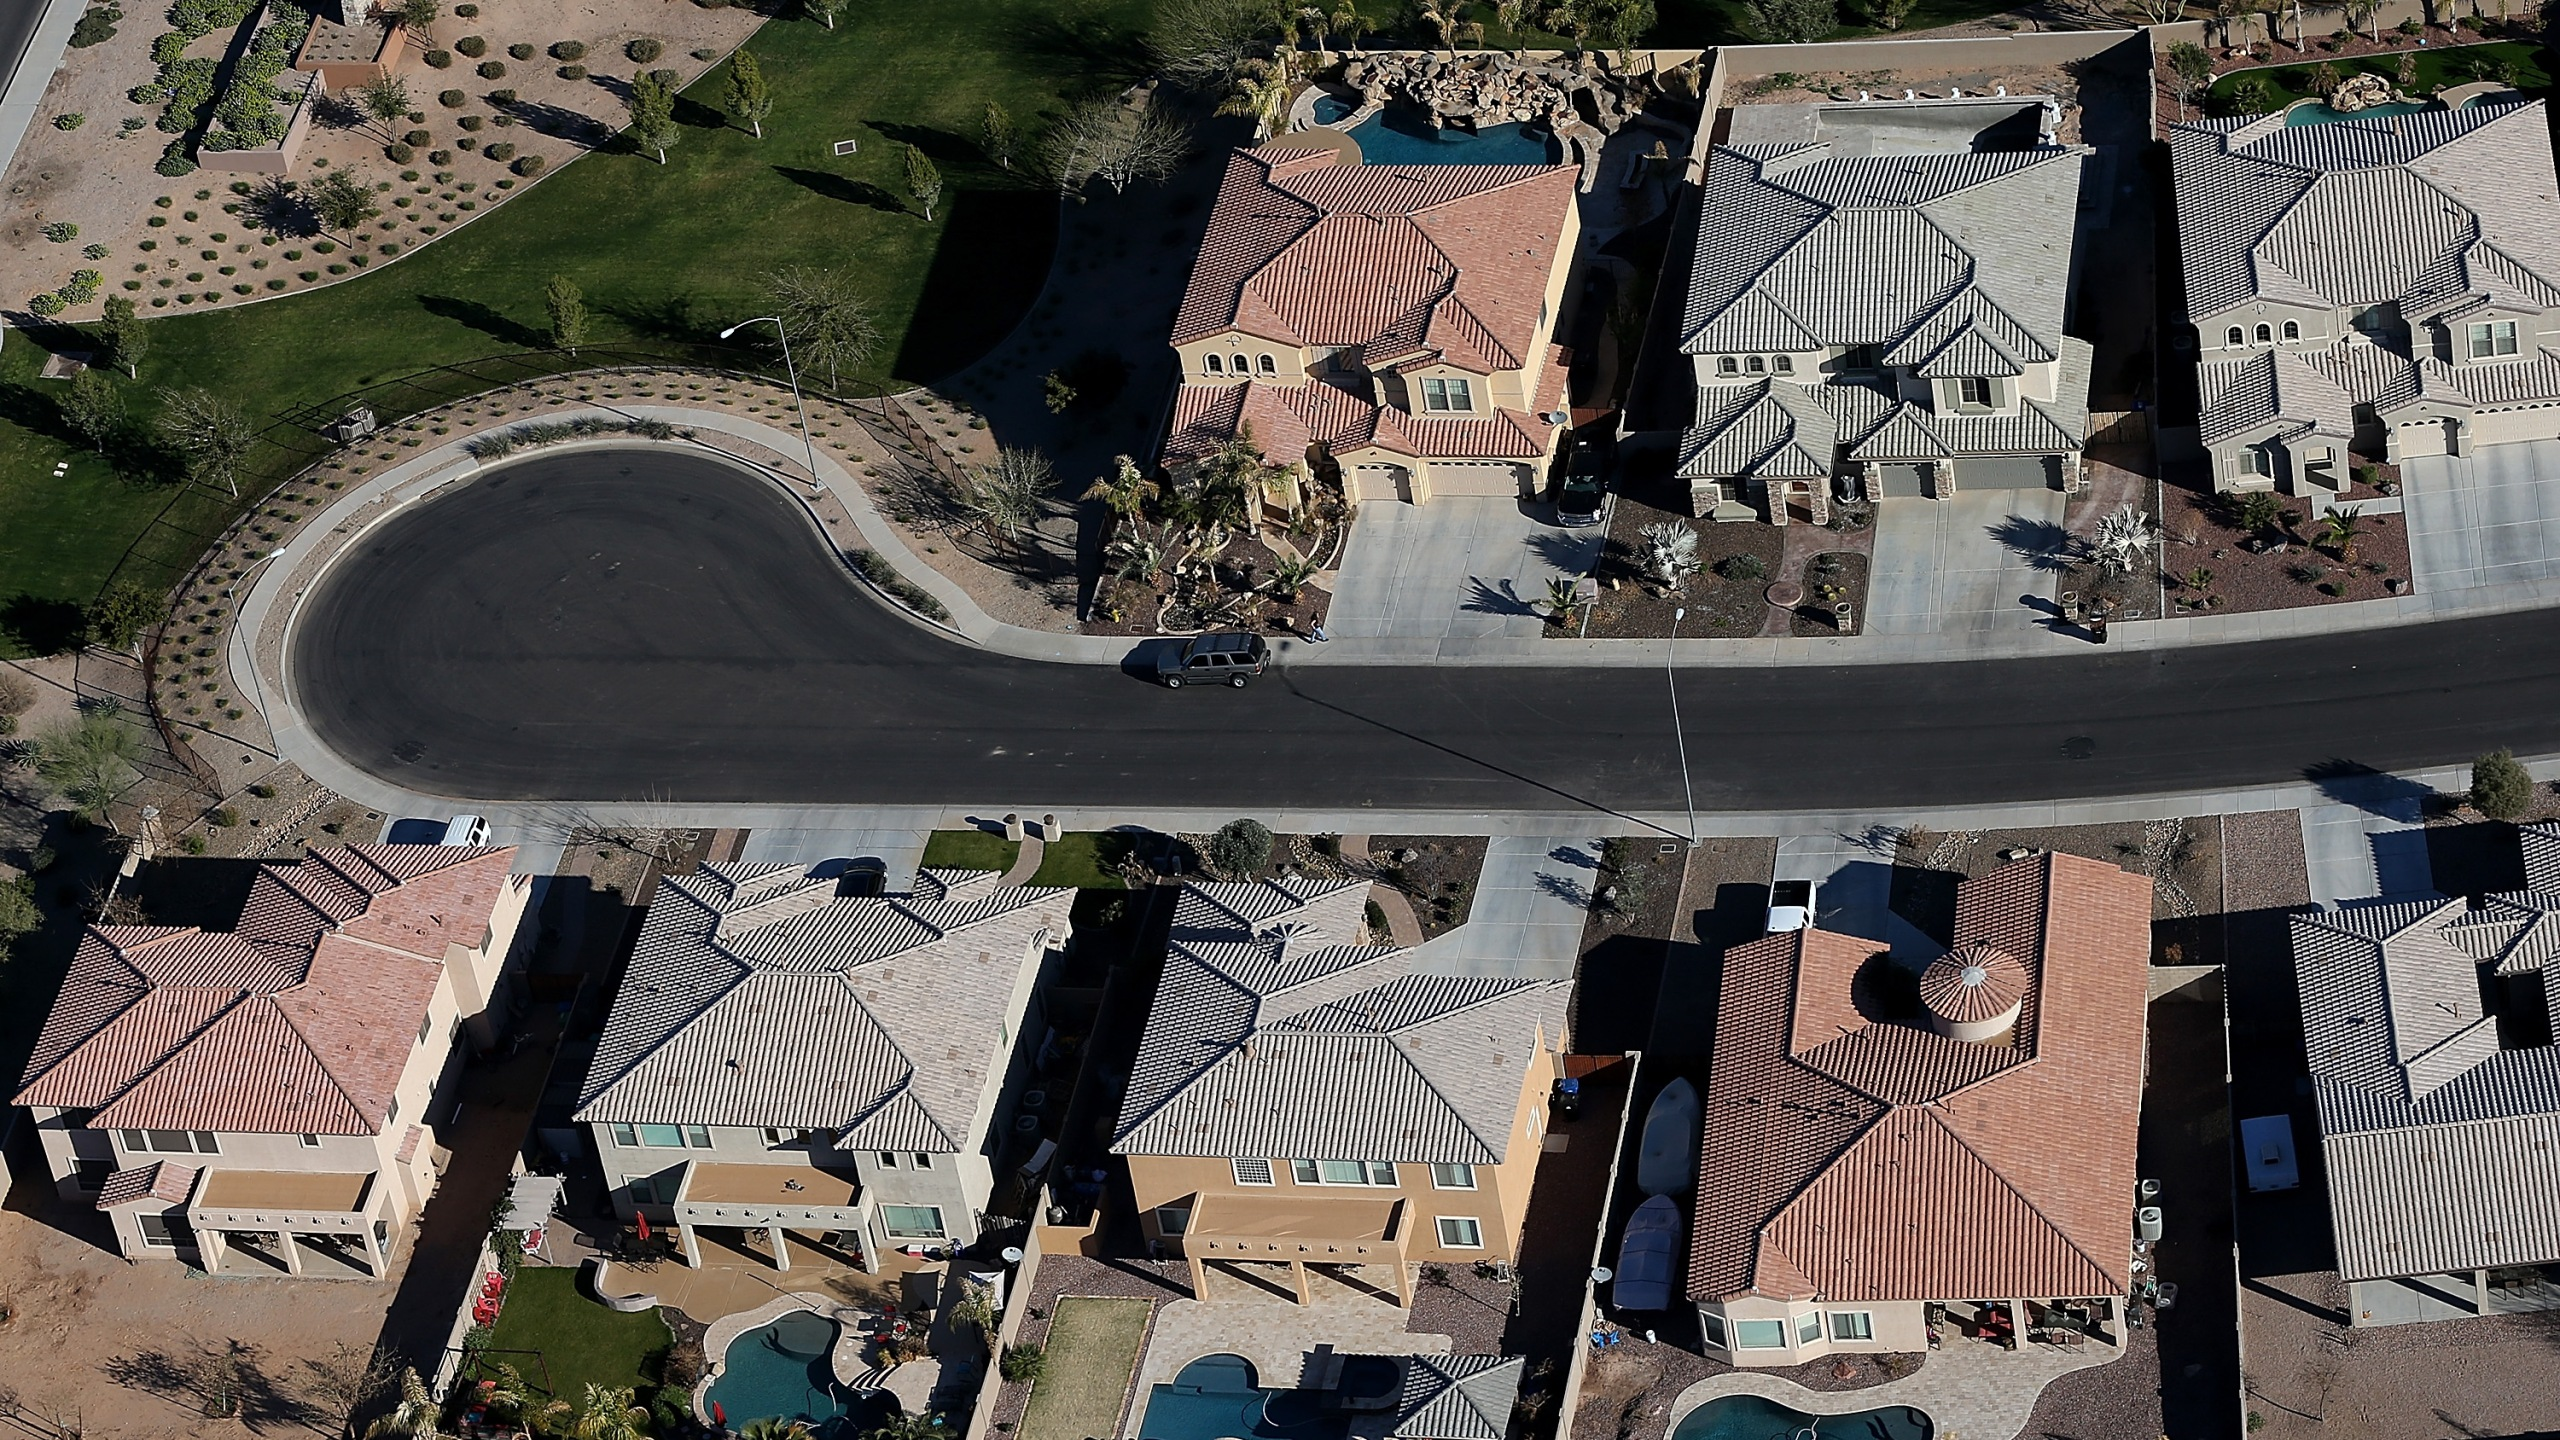 Rows of homes stand at a housing development near Phoenix, Arizona, on March 6, 2013. (Credit: Justin Sullivan/Getty Images)